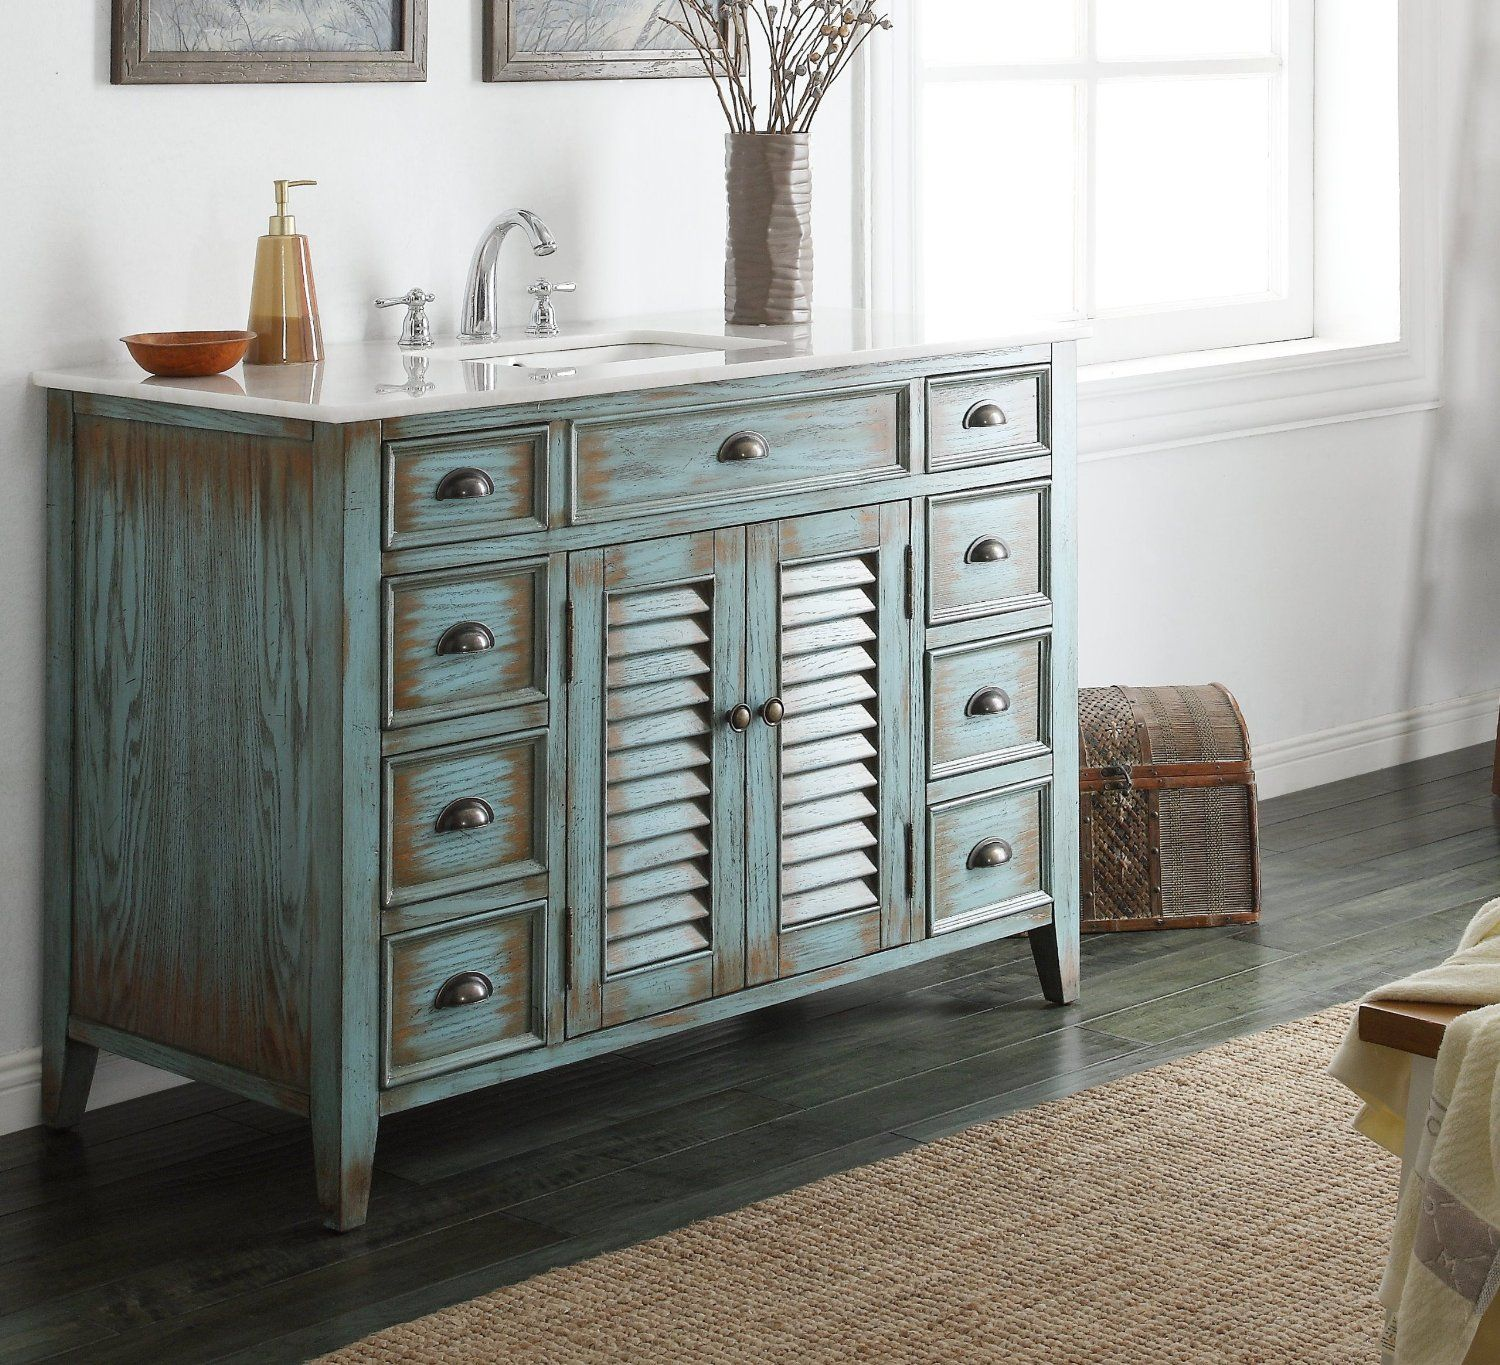 grey bathroom sink cabinets. 25 Rustic Bathroom Vanities to Make Your look Gorgeous